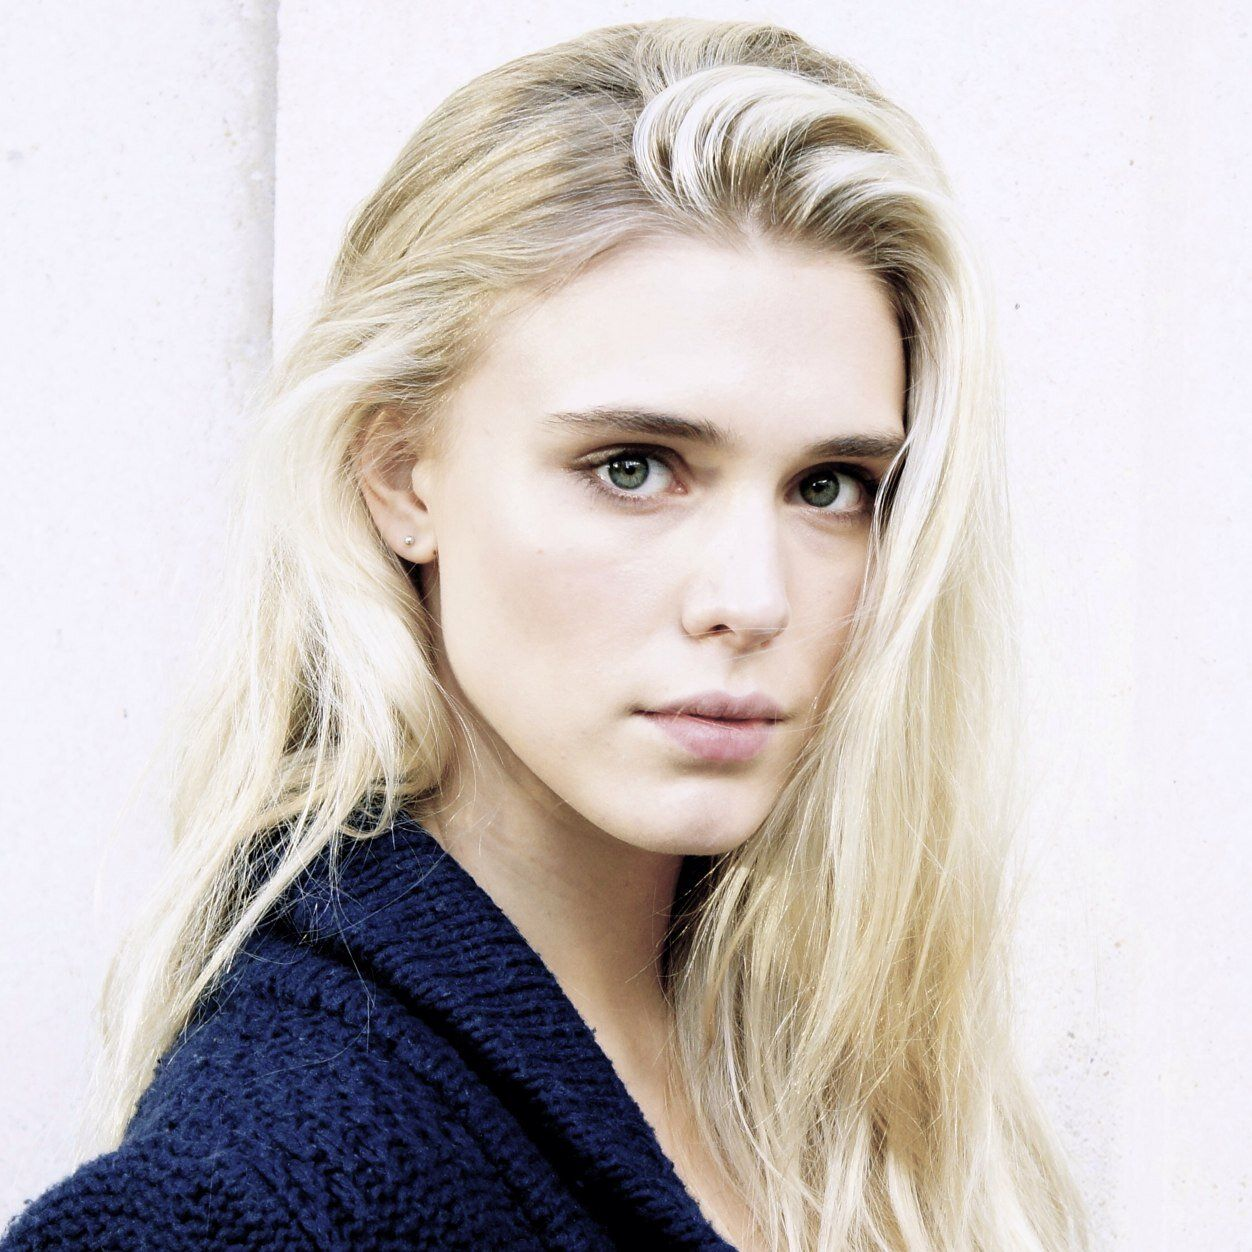 Snapchat Gaia Weiss nude photos 2019